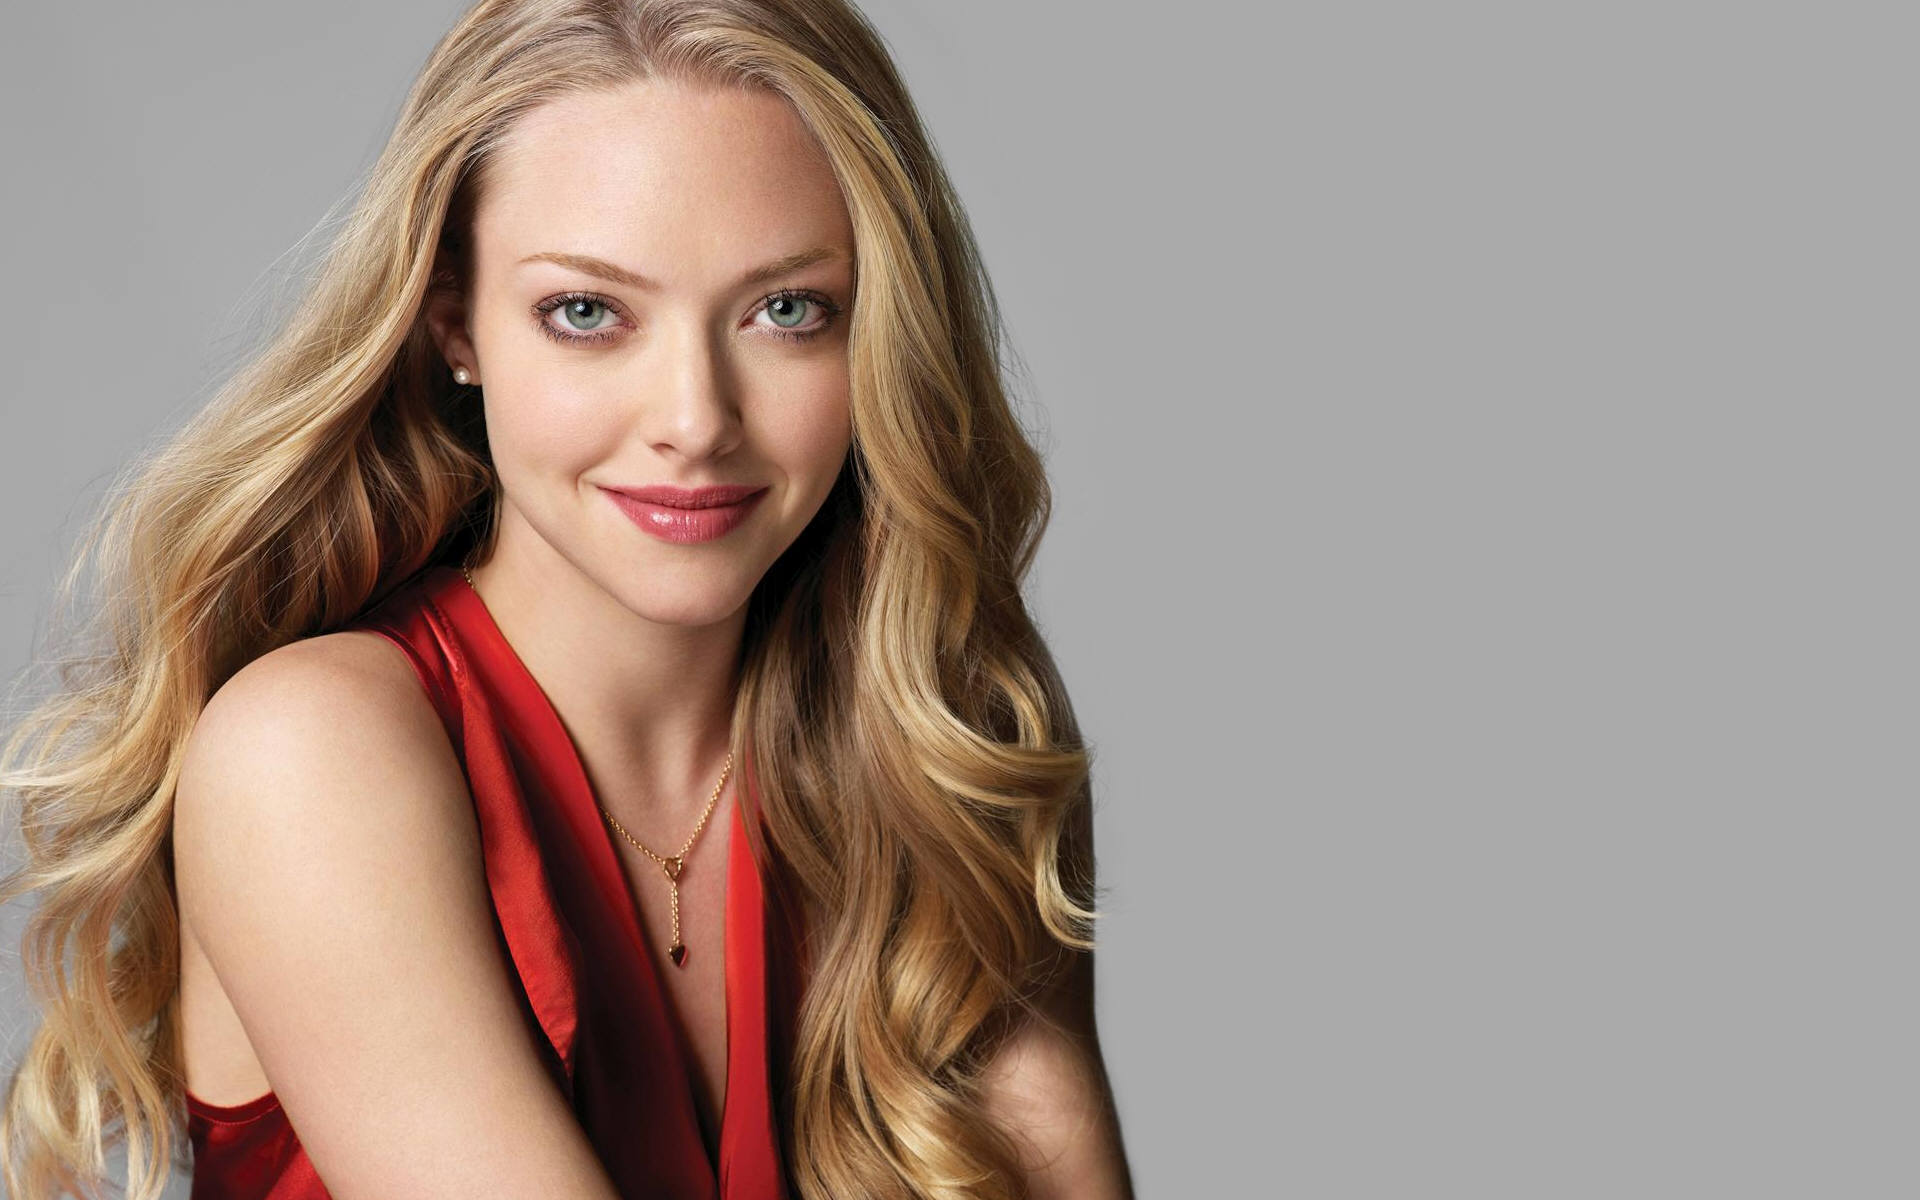 amanda seyfried desktop wallpaper 50595